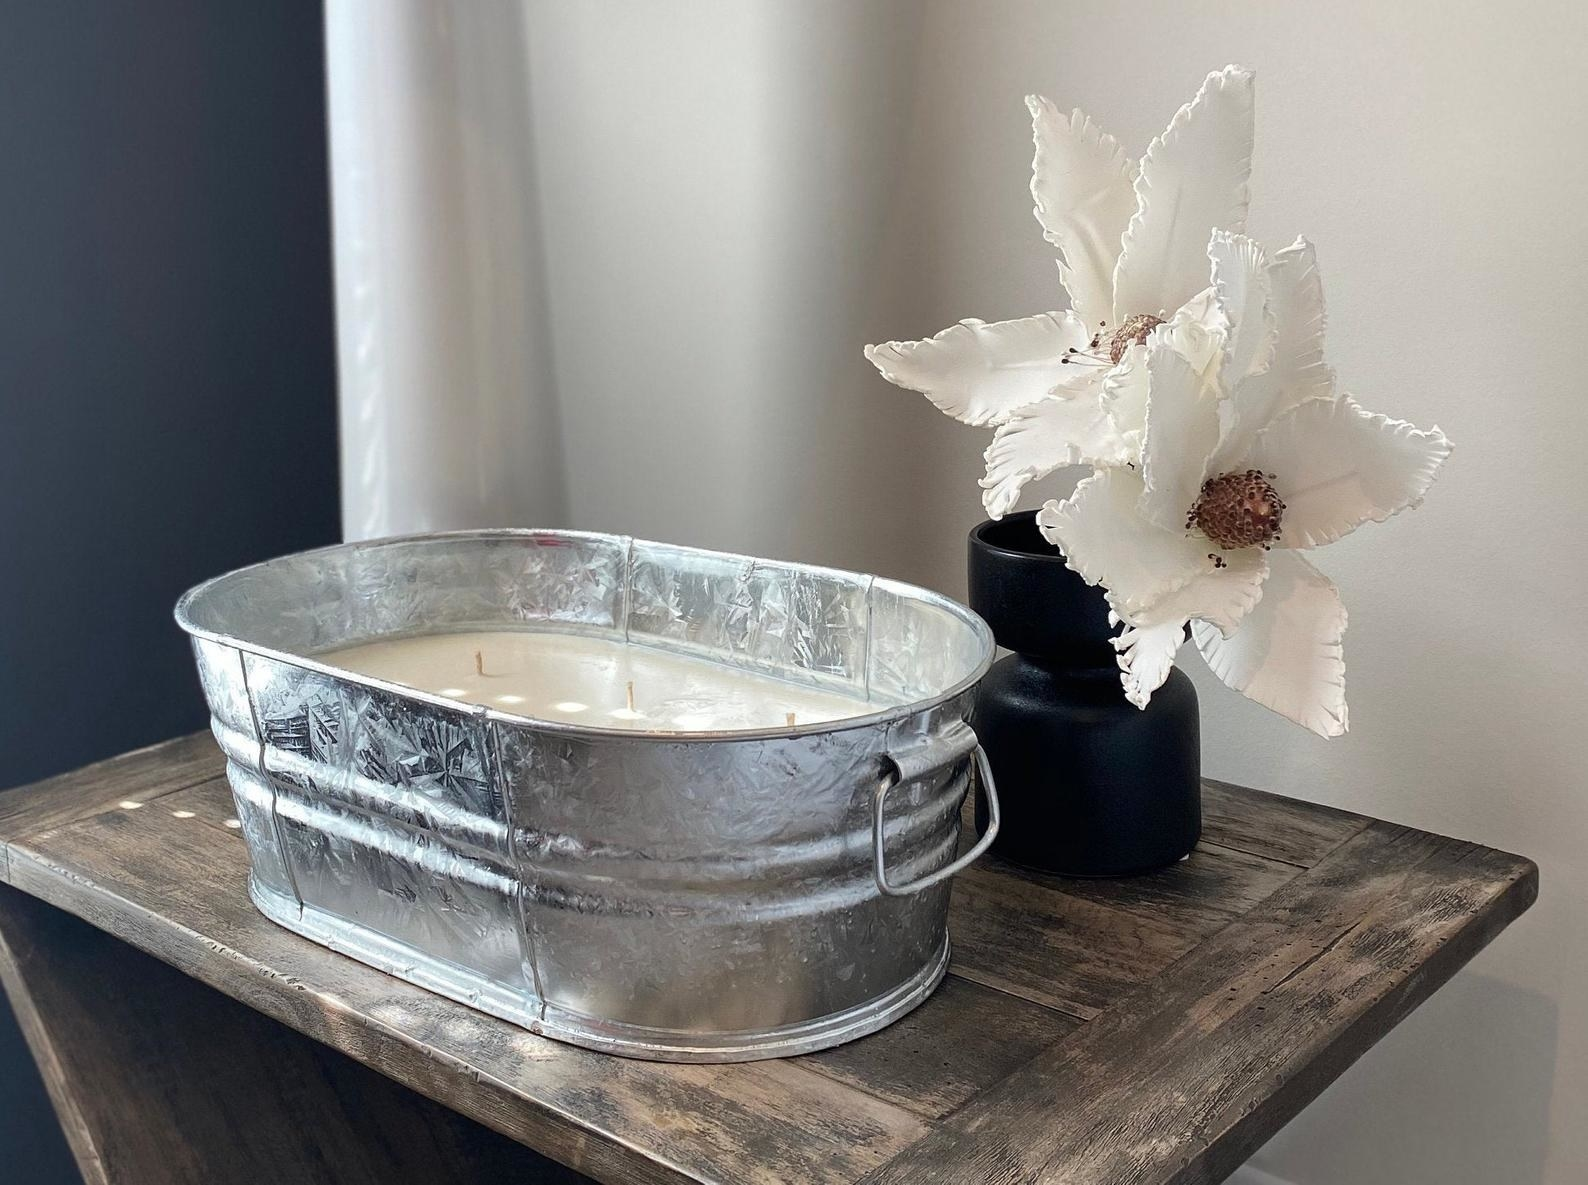 large oval tin tub (about a foot long)  with a candle inside that has multiple wicks